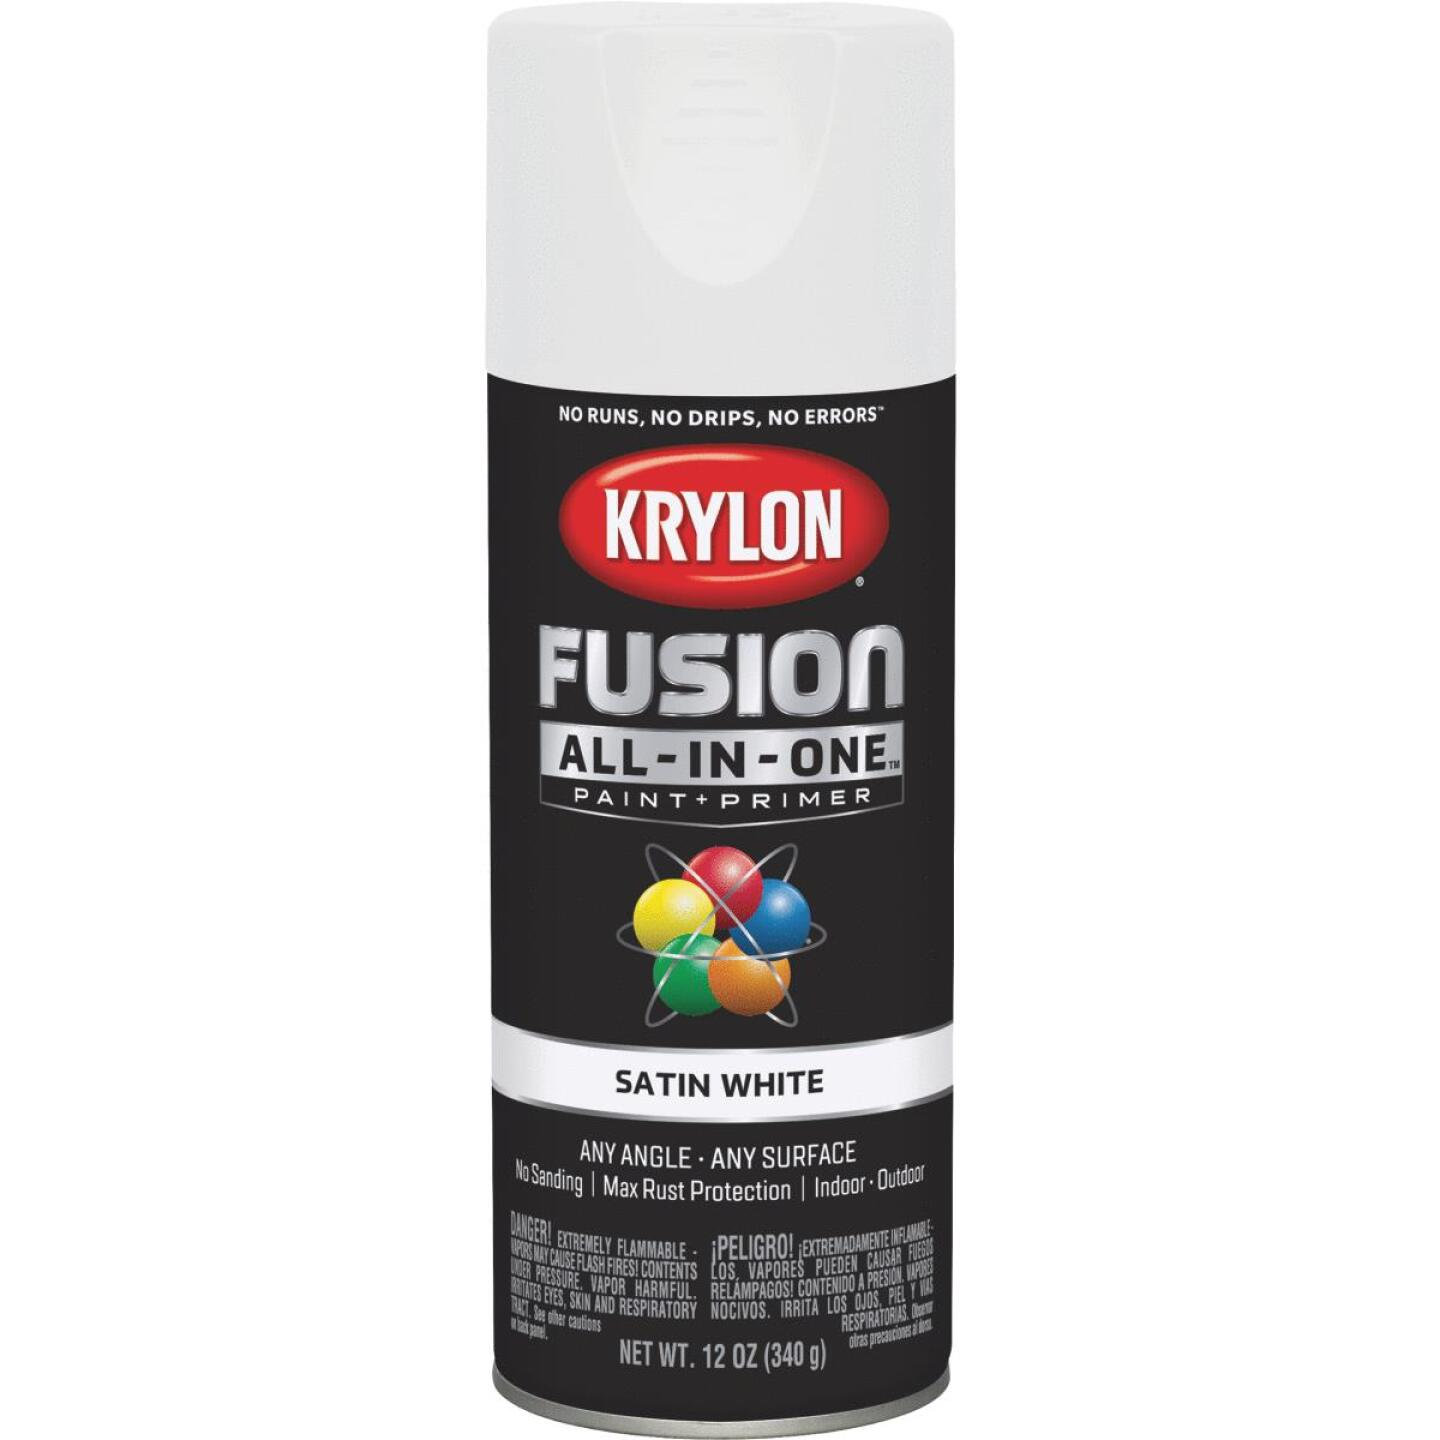 Krylon Fusion All-In-One Satin Spray Paint & Primer, White Image 1